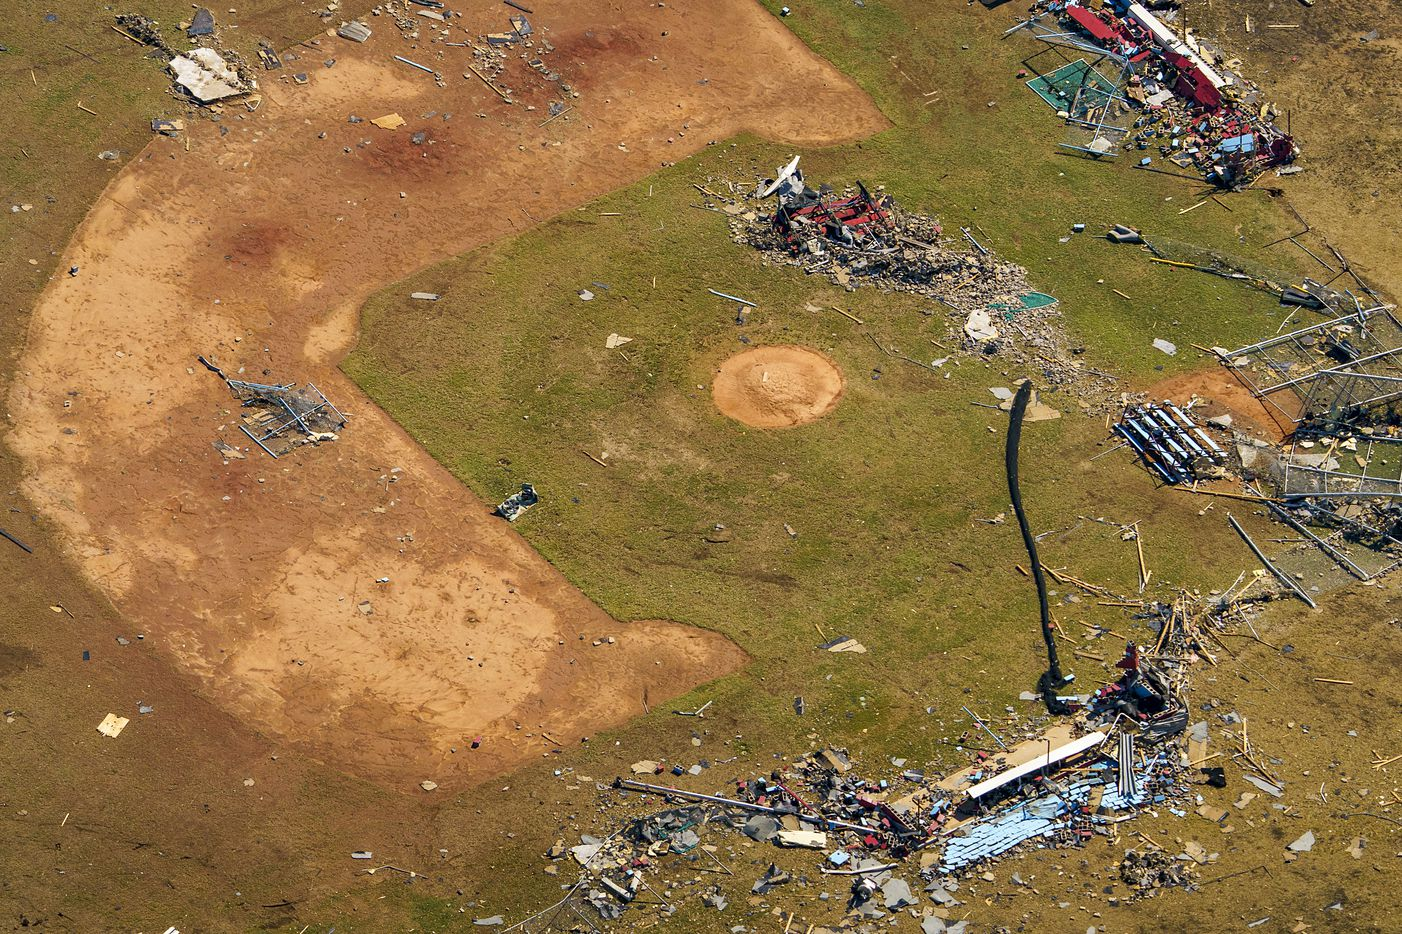 Debris from tornado damage is strewn across a baseball field at Thomas Jefferson High School on Monday, Oct. 21, 2019, in Dallas.